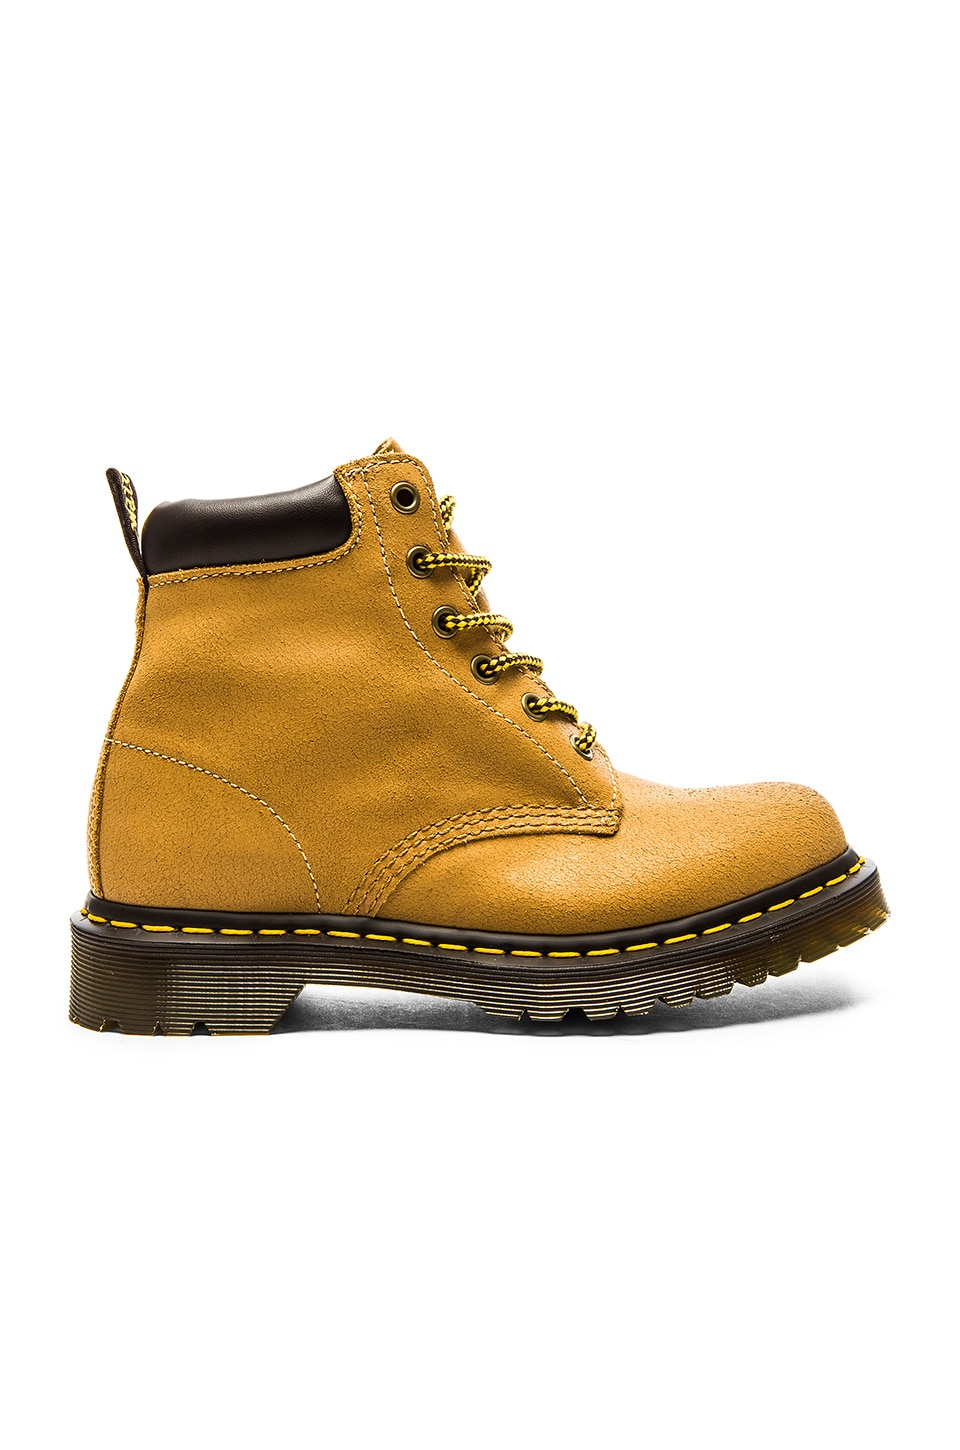 6cc3ae2cf72 Dr. Martens 939 6-Eye Hiker Boot in Tan | REVOLVE